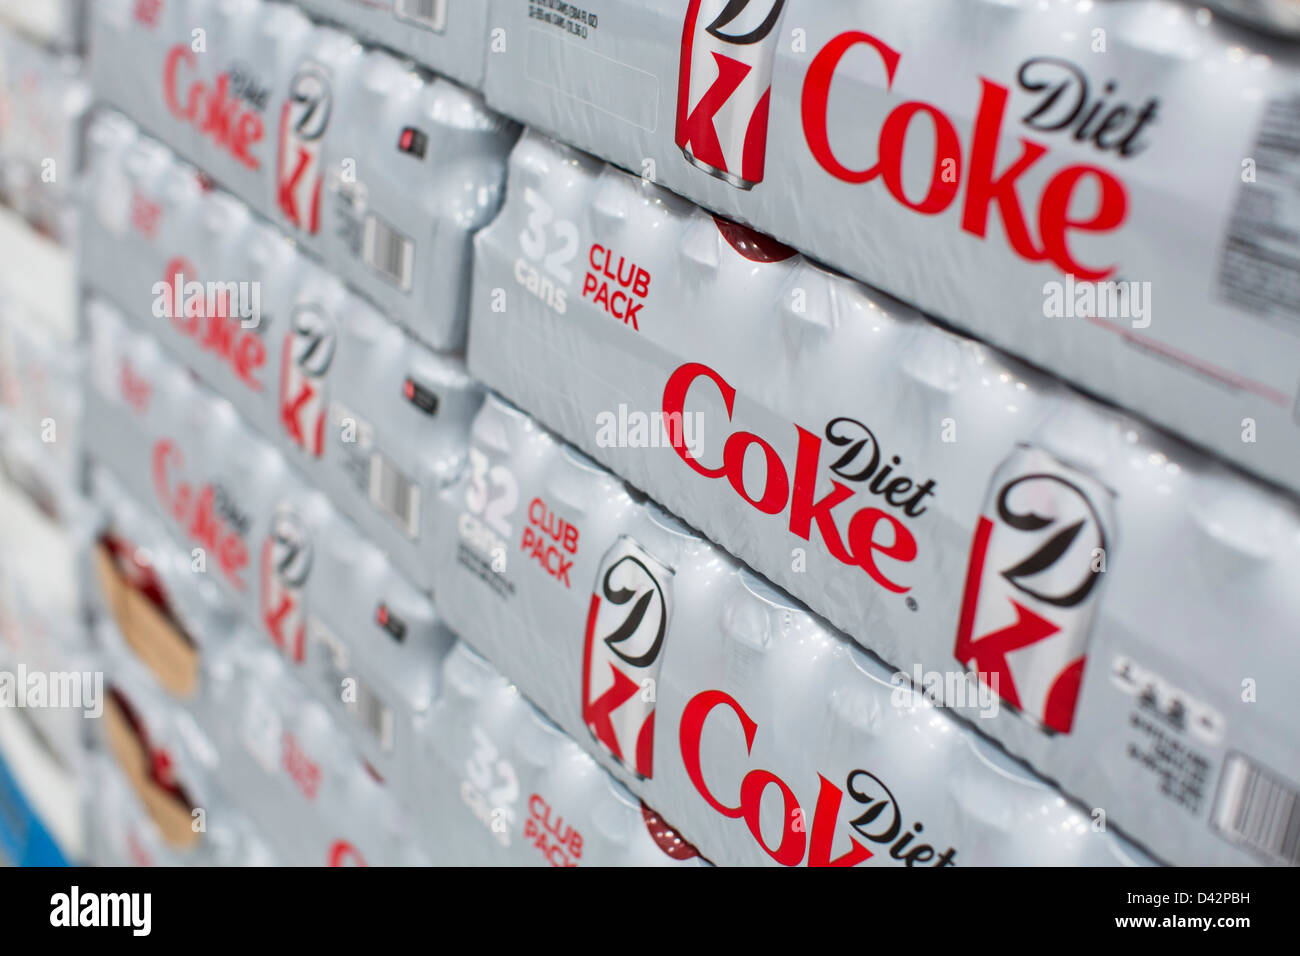 Diet coke on display at a costco wholesale warehouse club stock diet coke on display at a costco wholesale warehouse club thecheapjerseys Images